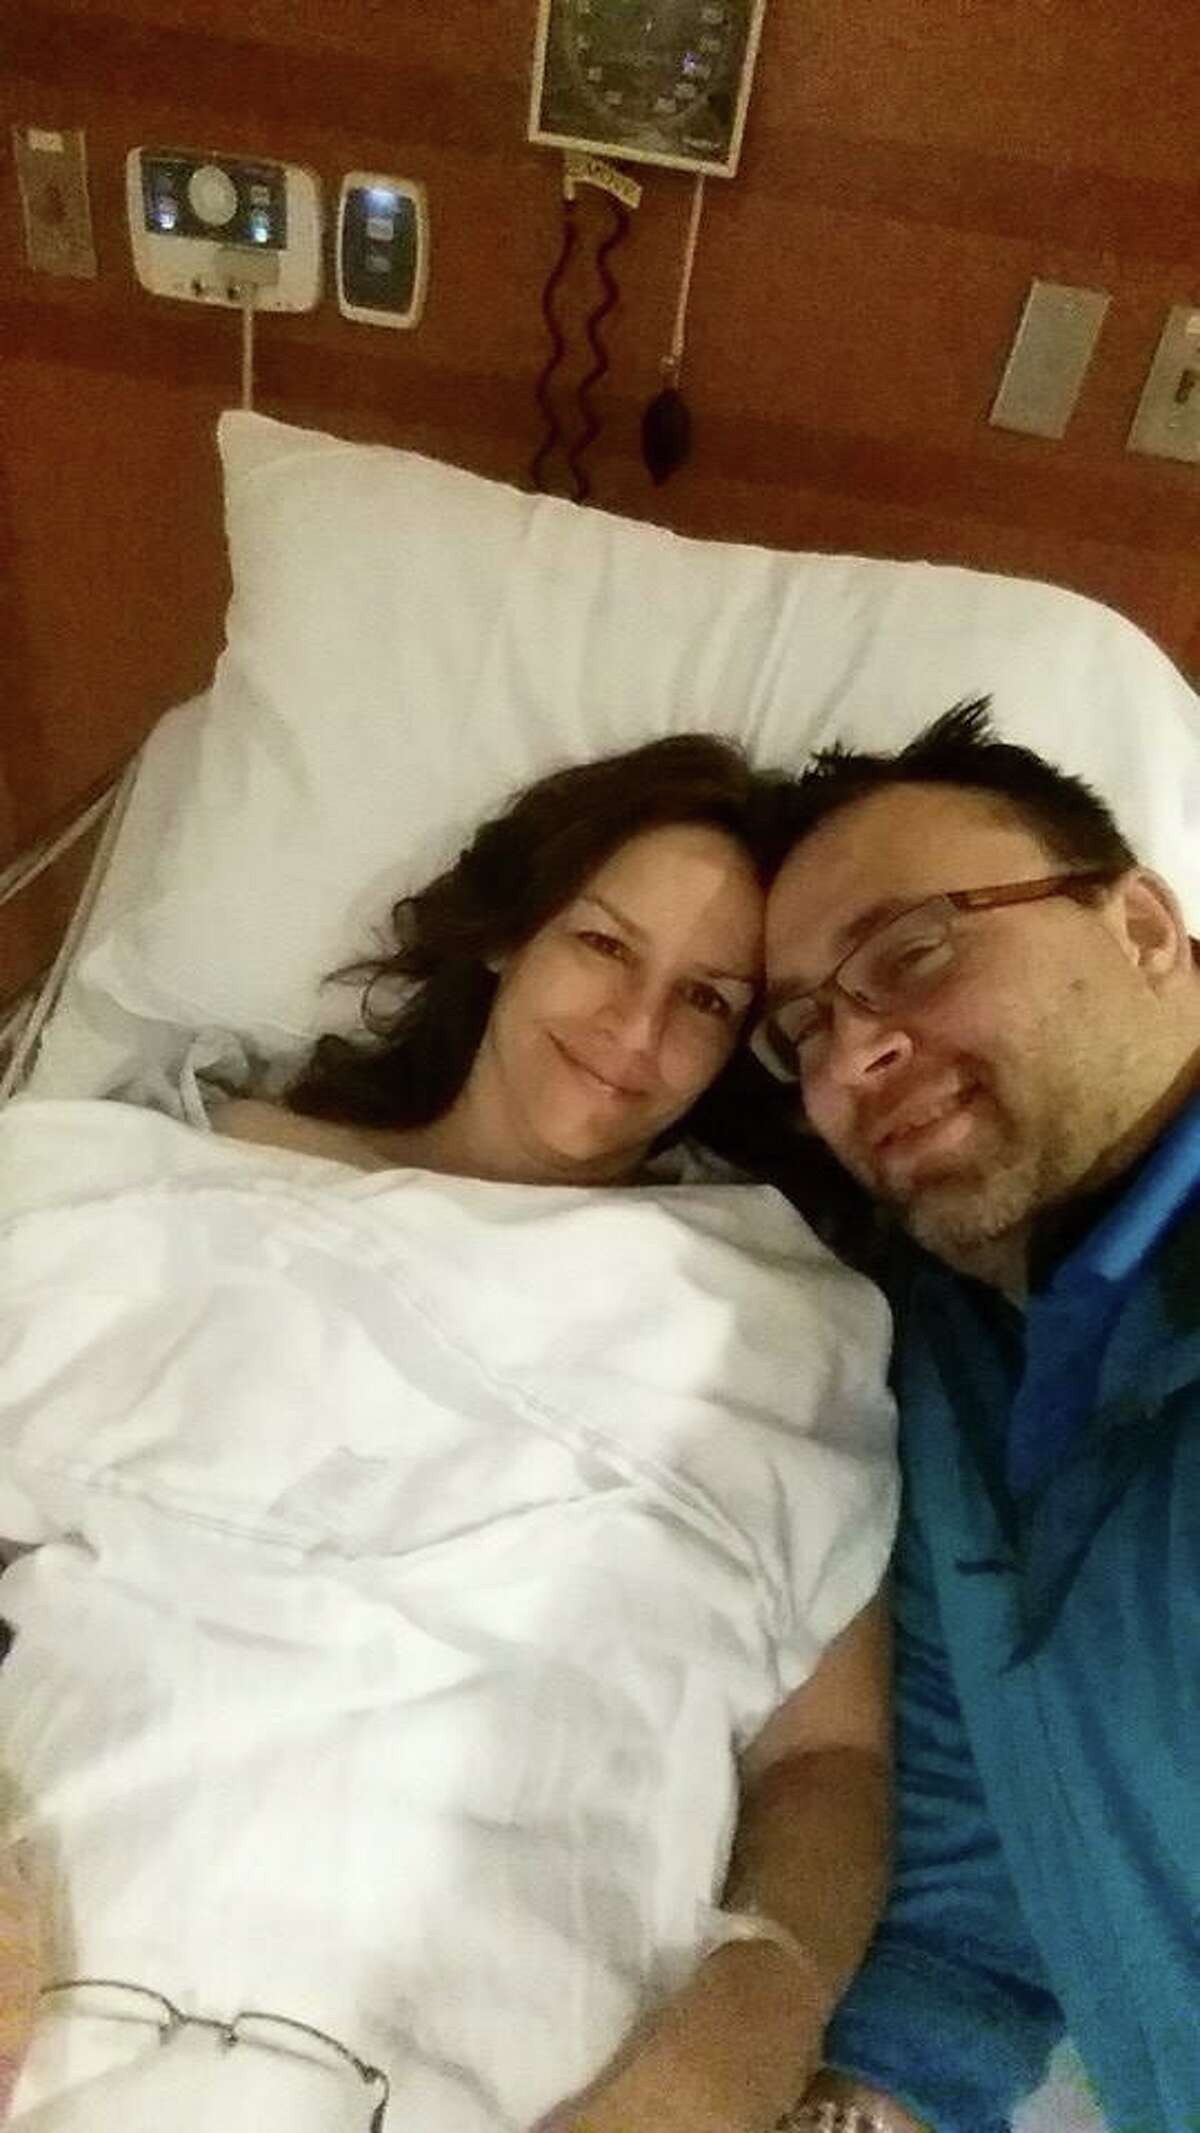 Michelle Perzan shares a moment with her husband, Aaron, as she recovers from surgery in 2015.